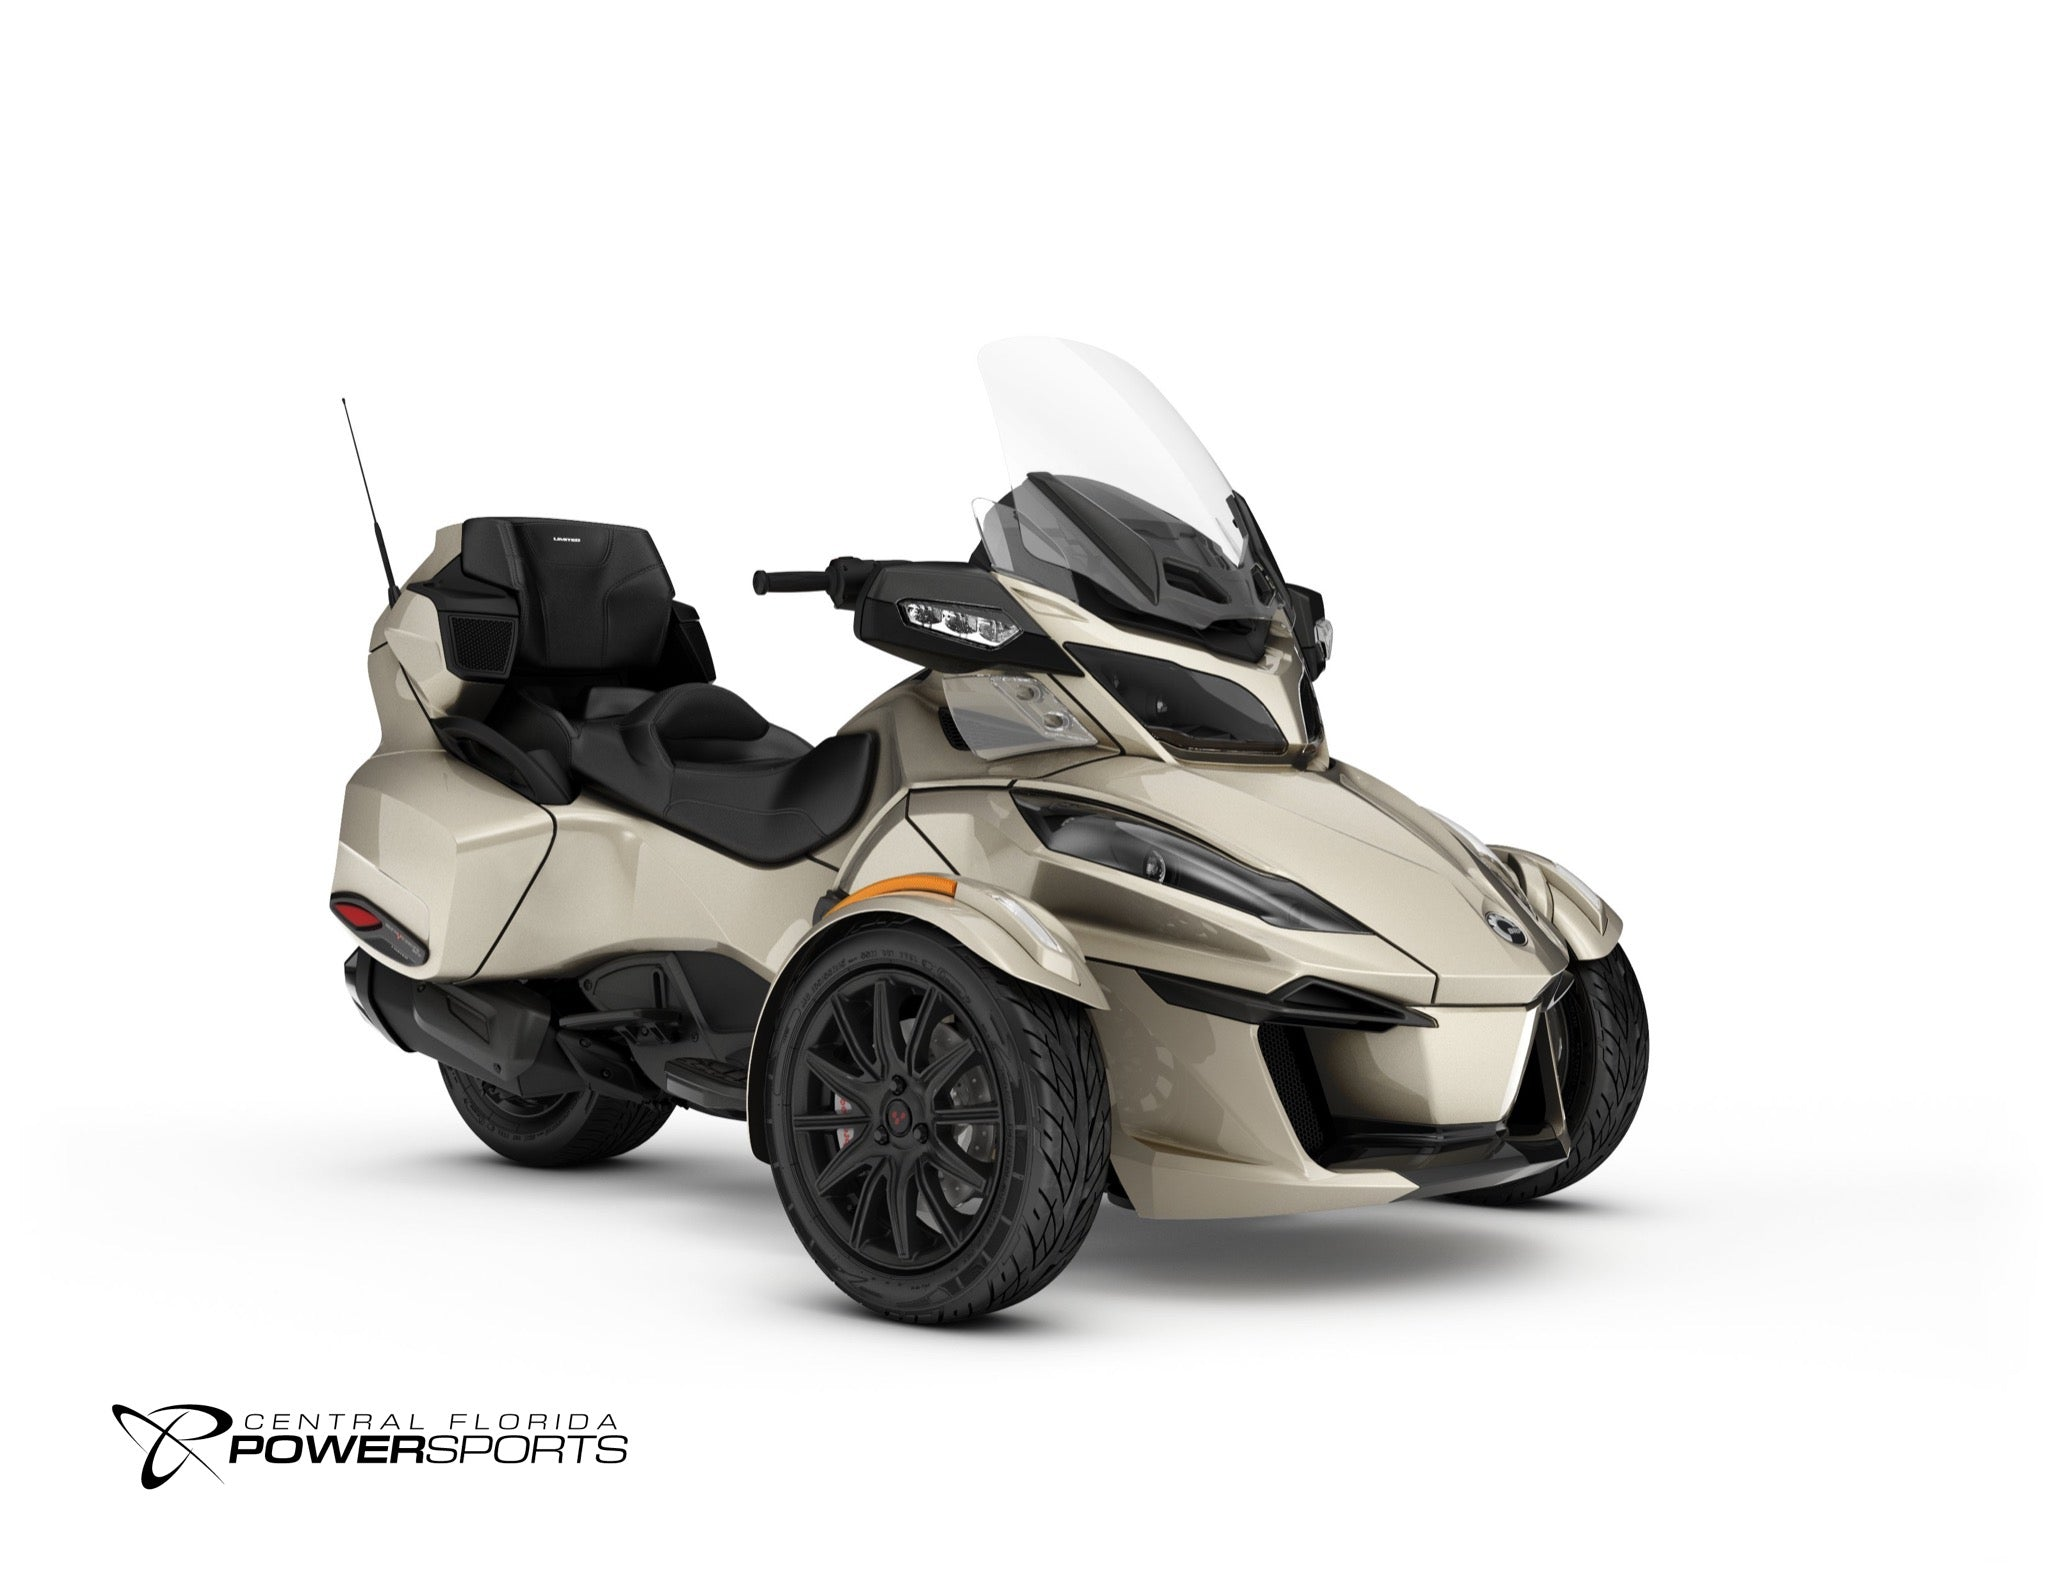 Lowest Price 2018 Can Am Spyder RT Limited For Sale Kissimmee